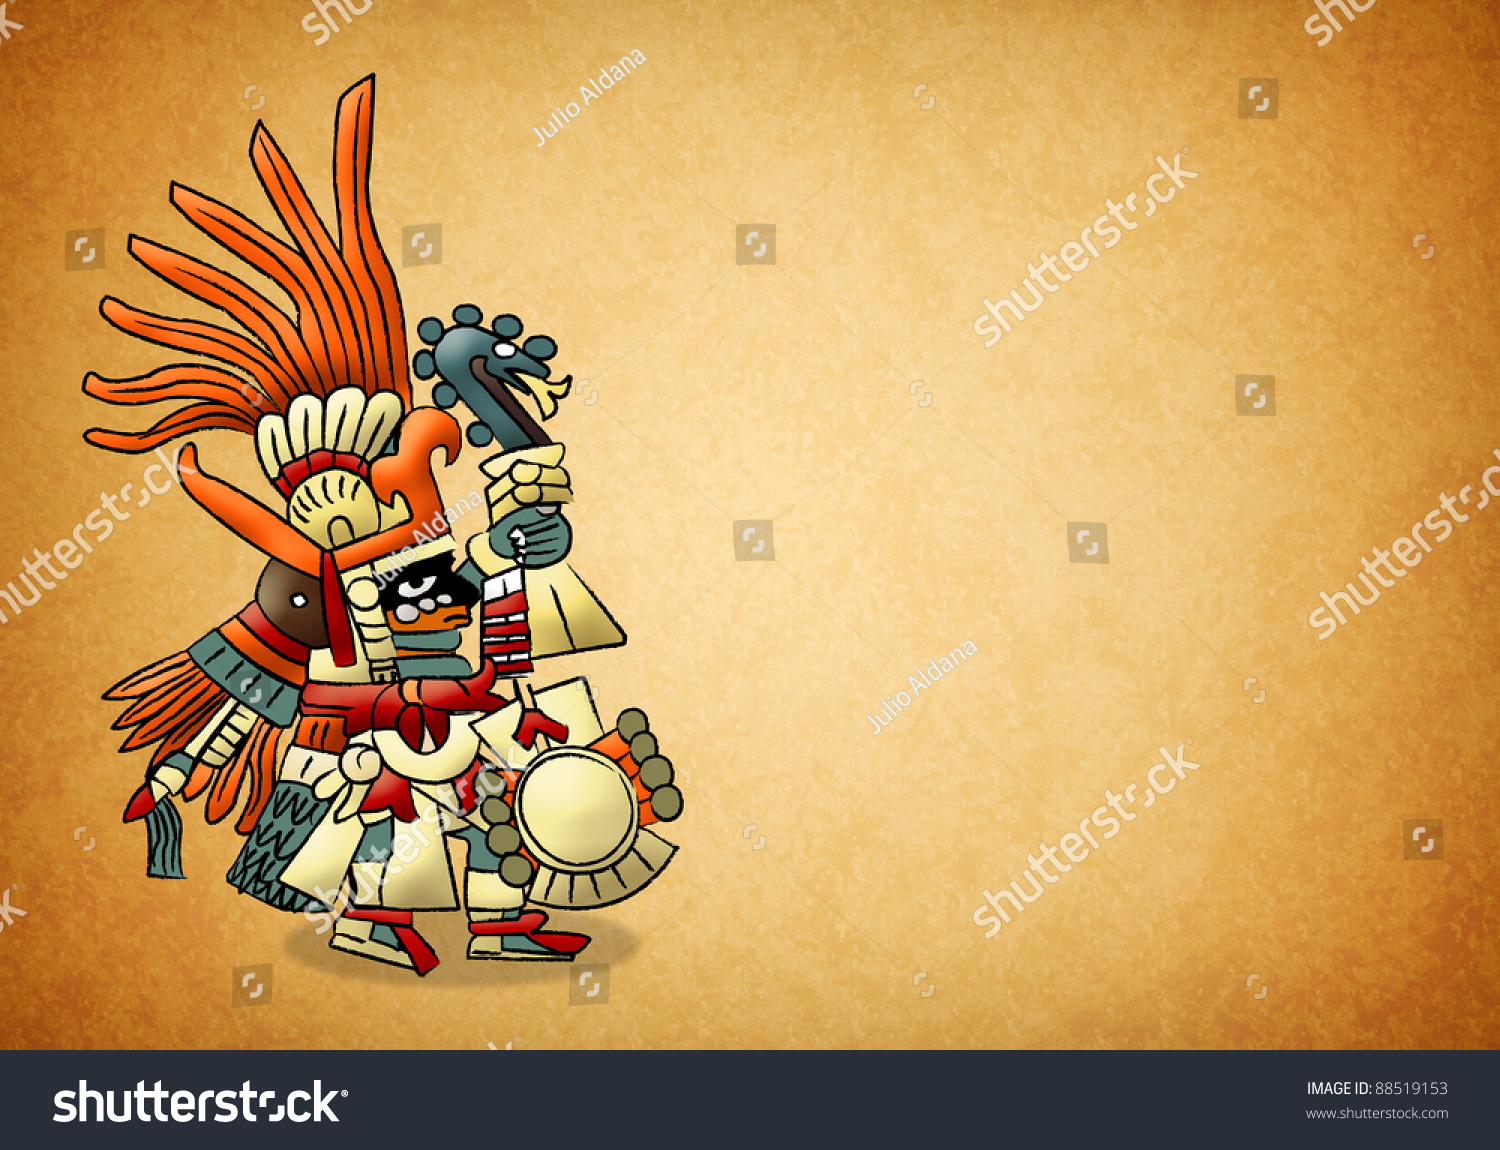 the aztec account of the conquest of mexico essay Open document below is an essay on the spanish and aztec accounts of the conquest of mexico from anti essays, your source for research papers, essays, and term.